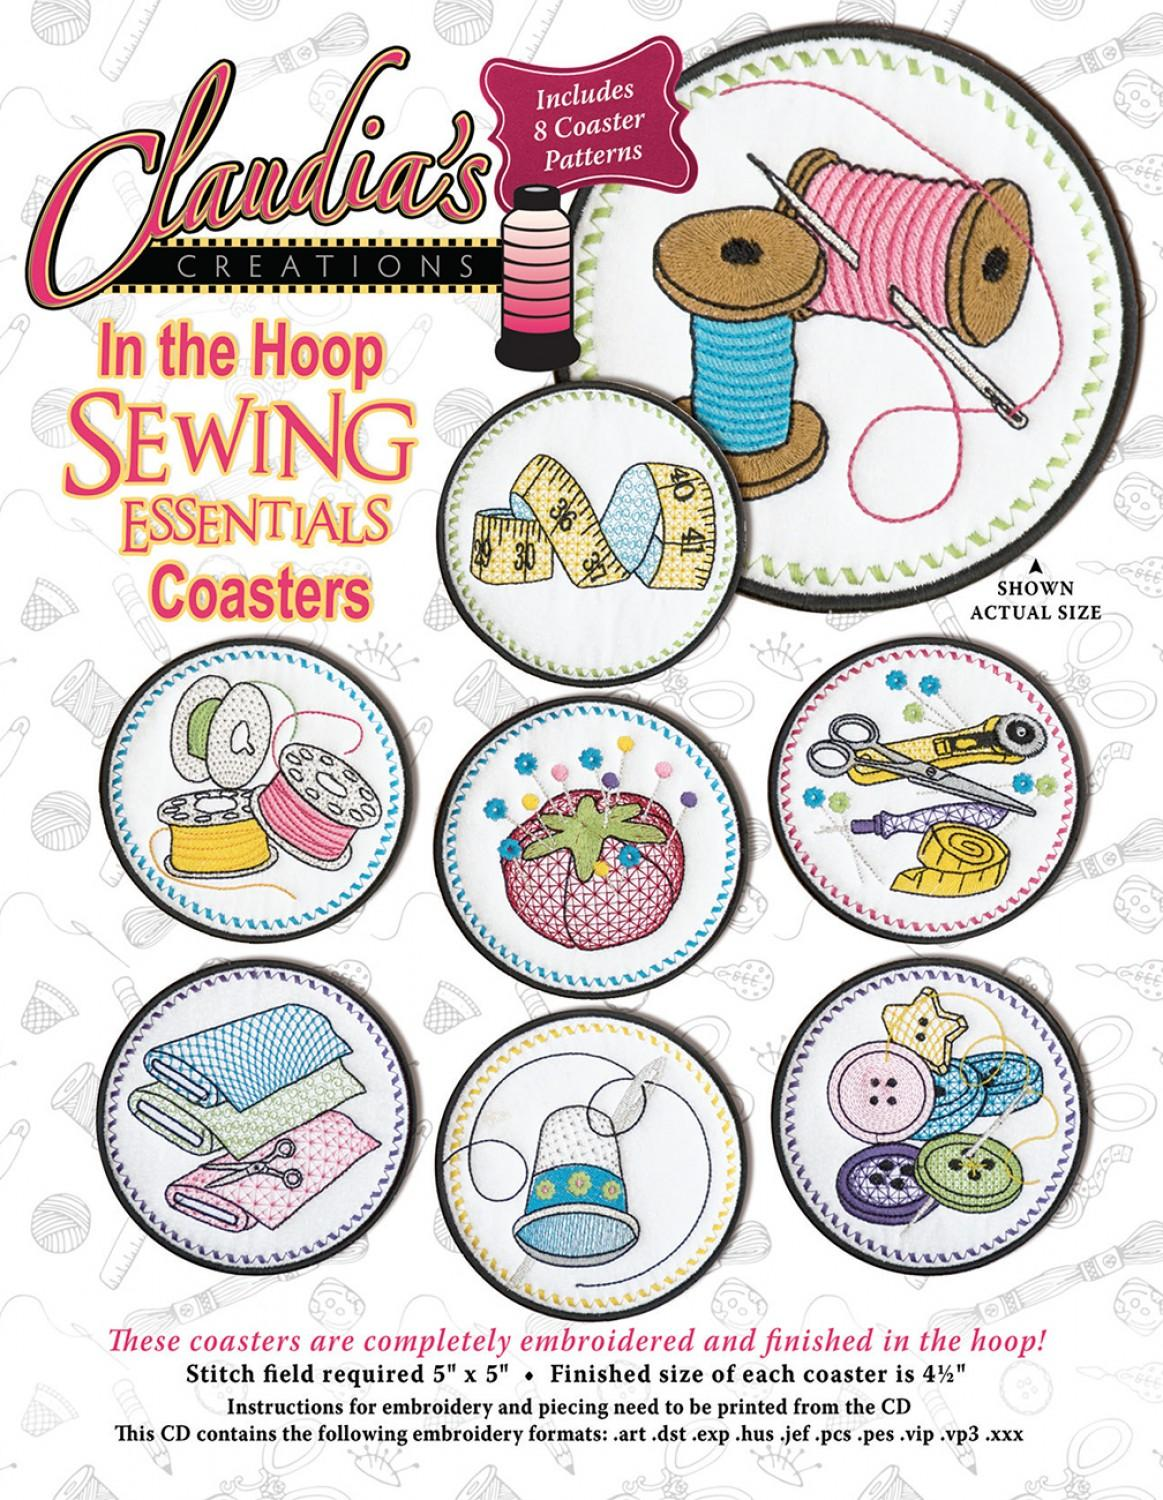 In the Hoop Sewing Coasters Design CD